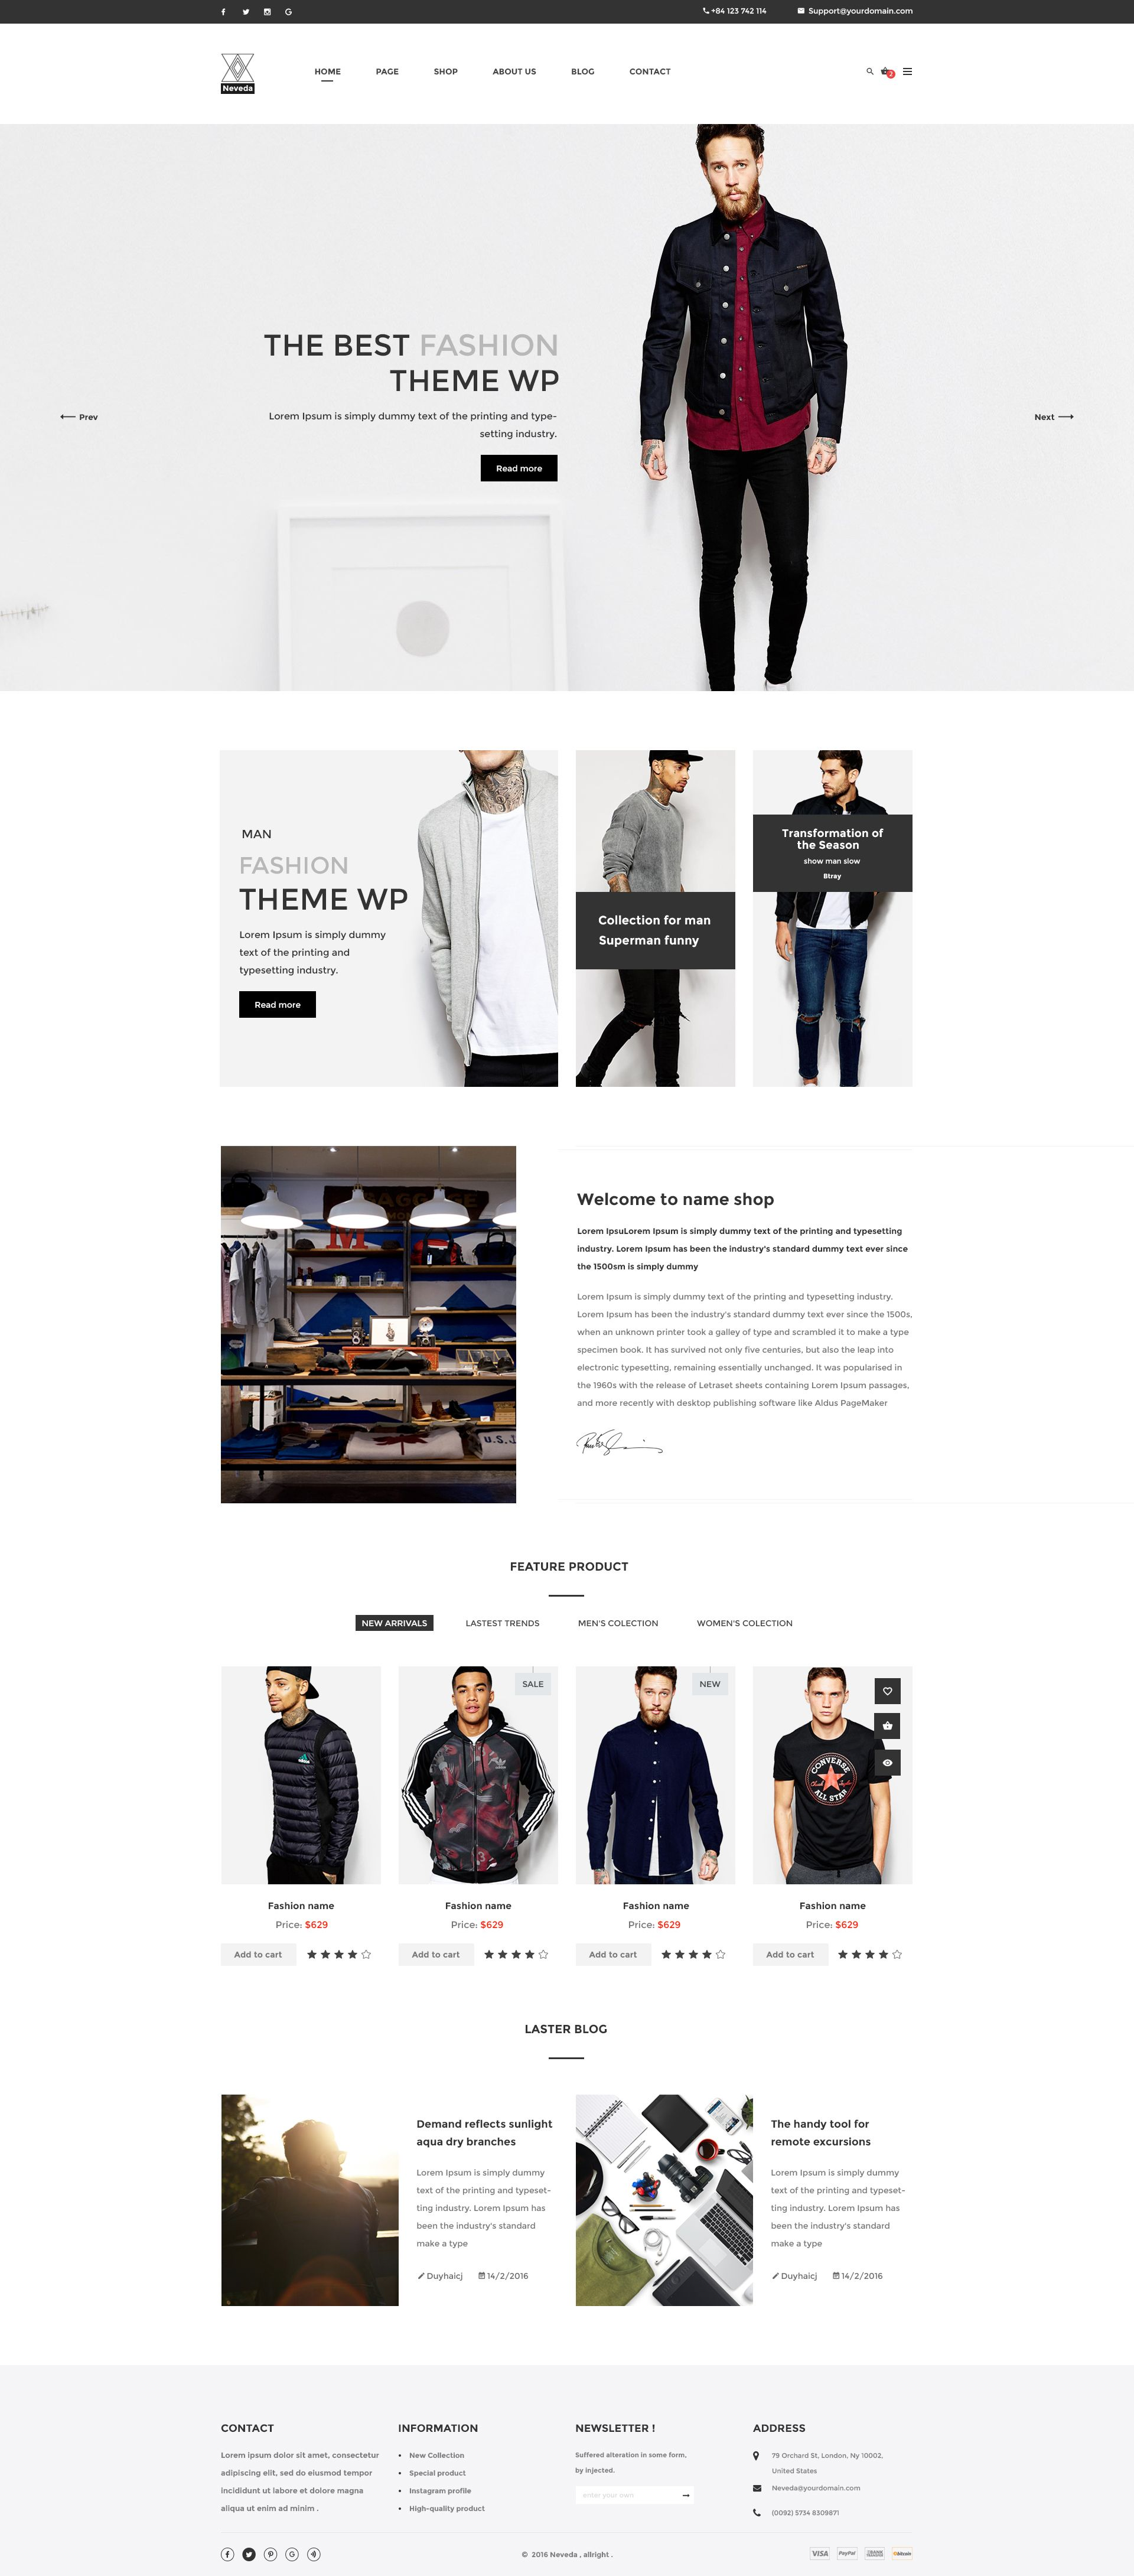 ec3301f5432f Neveda can be seen as a perfect PSD eCommerce template to start your own fashion  store website for your clients. #creative, #ecommerce, #FashionShop ...